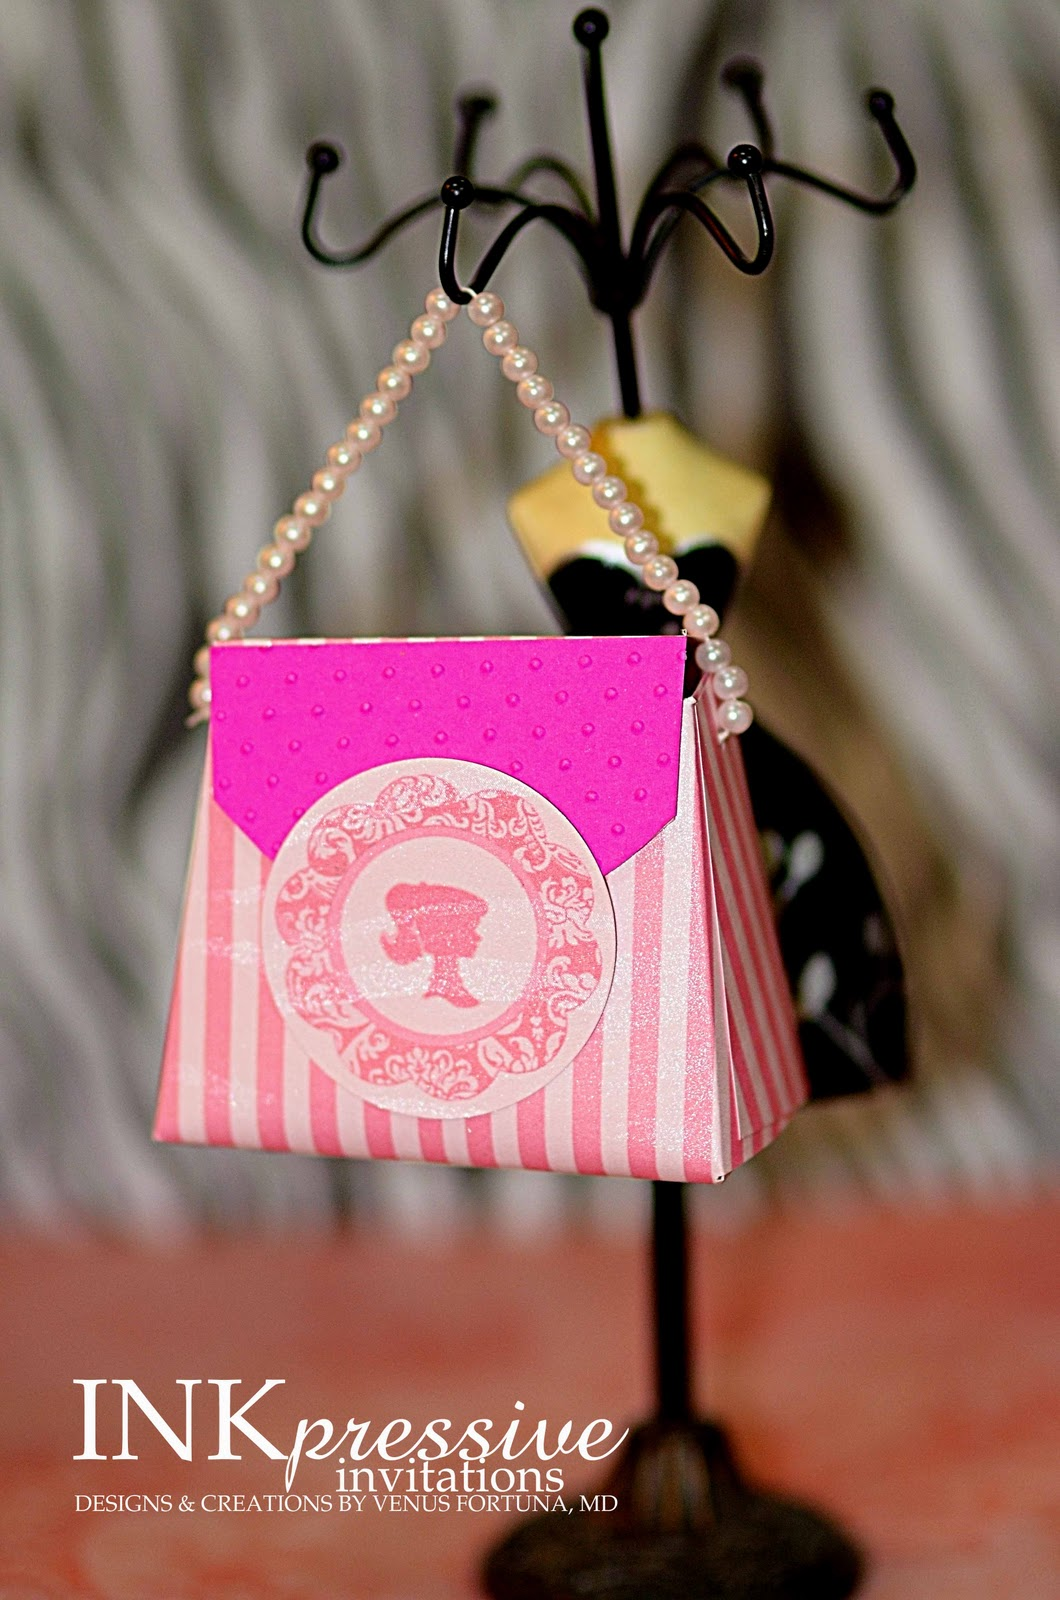 Barbie Handbag Invitation | INKPRESSIVE INVITATIONS